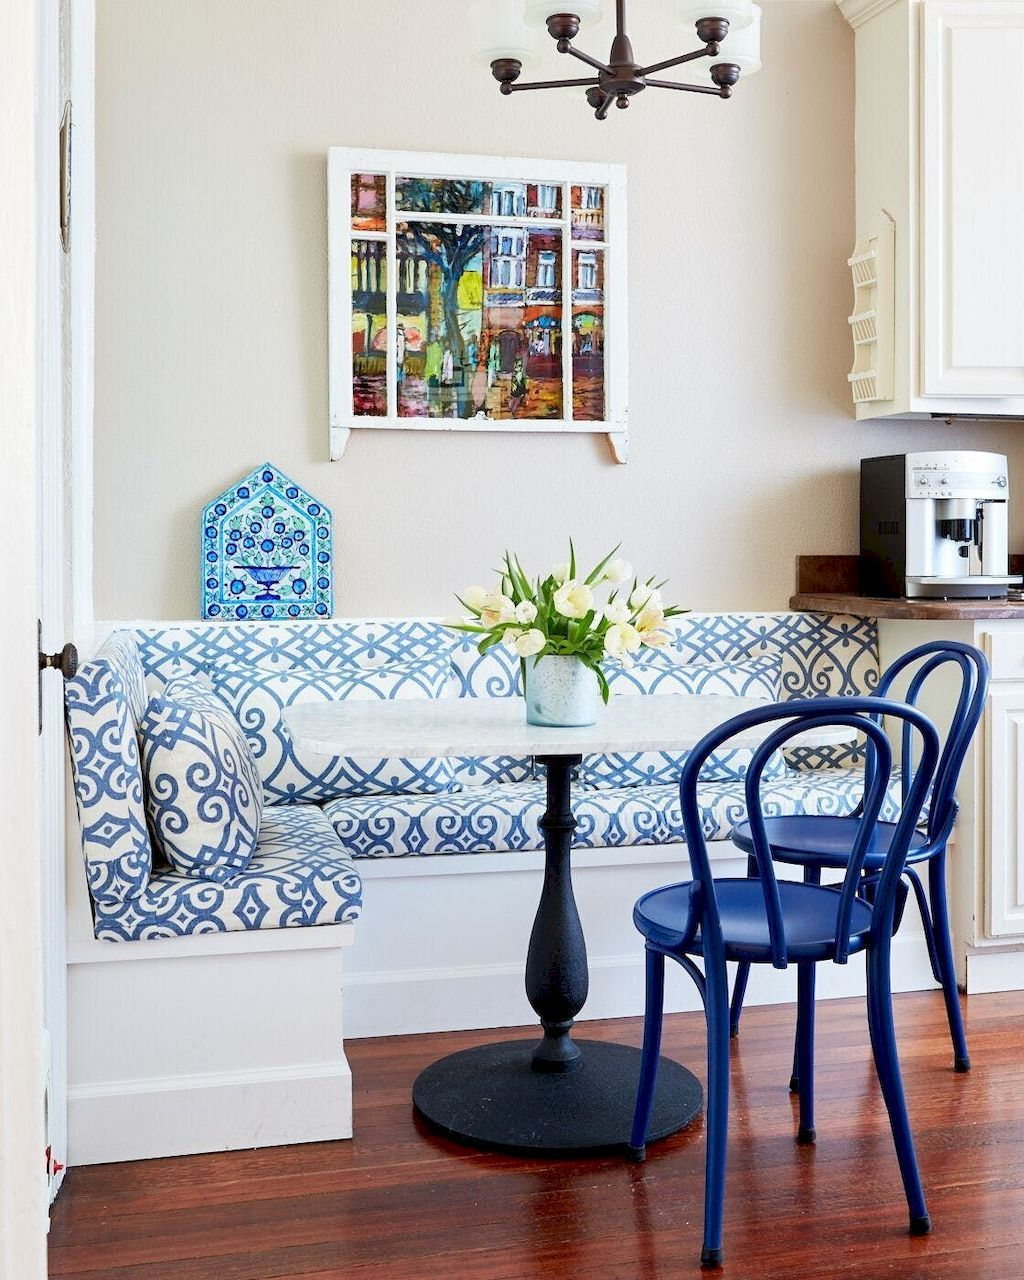 Decoration ideas for your small dining room dining room